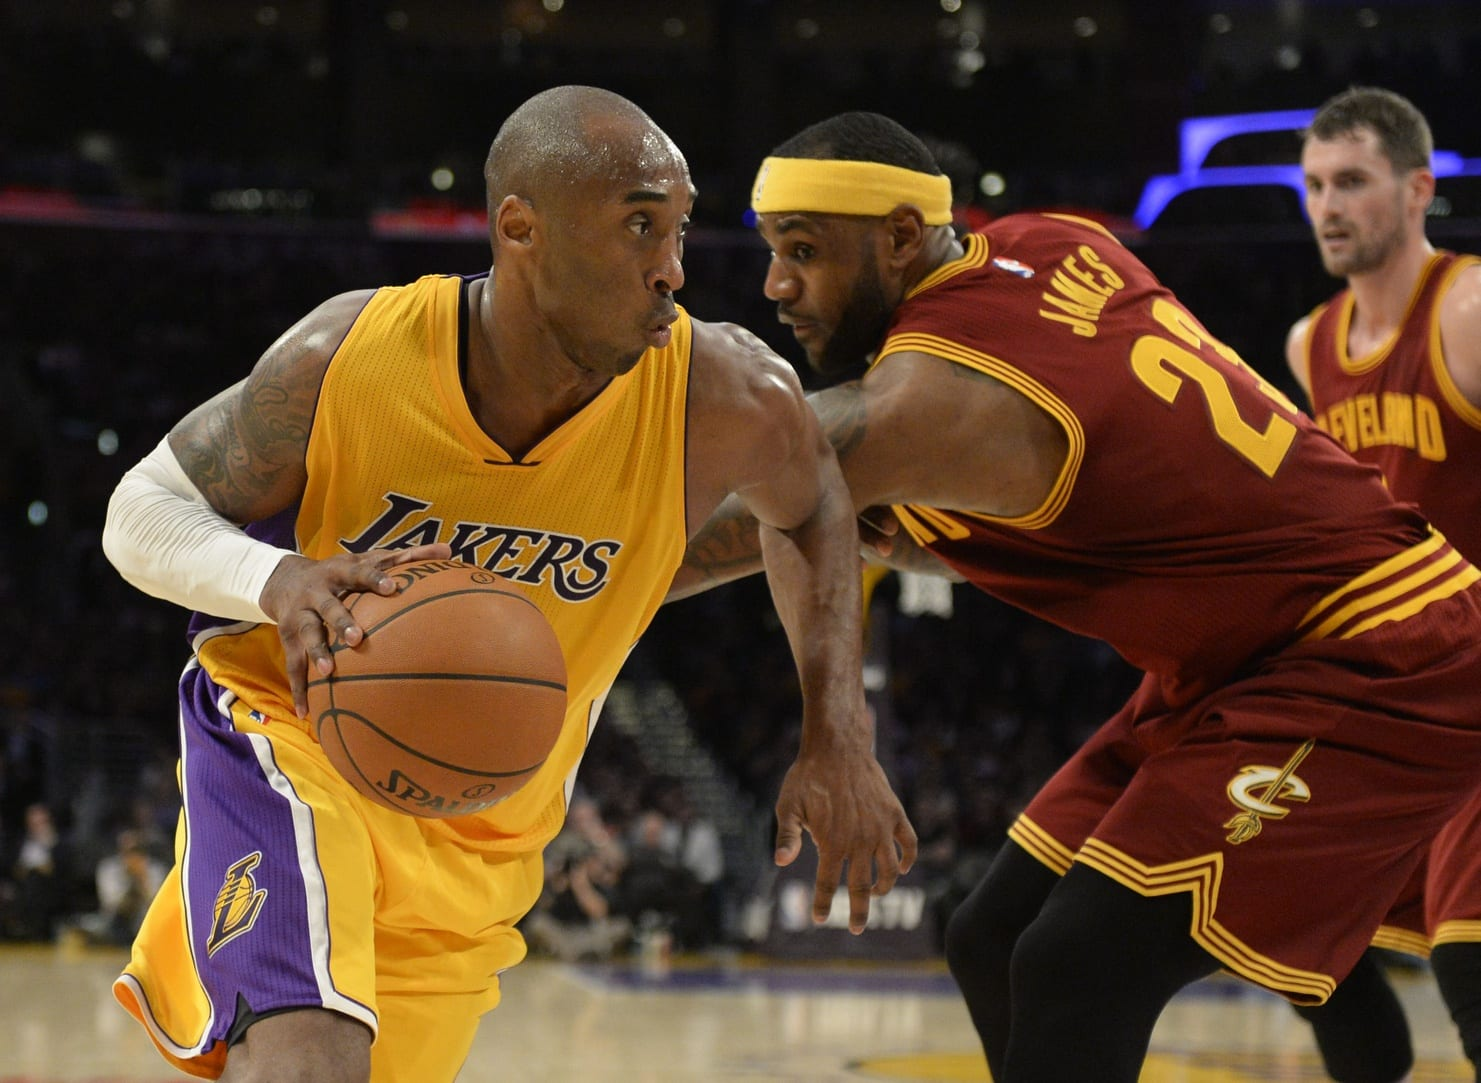 Lebron James Calls Kobe Bryant's Struggle 'a Personal Challenge'